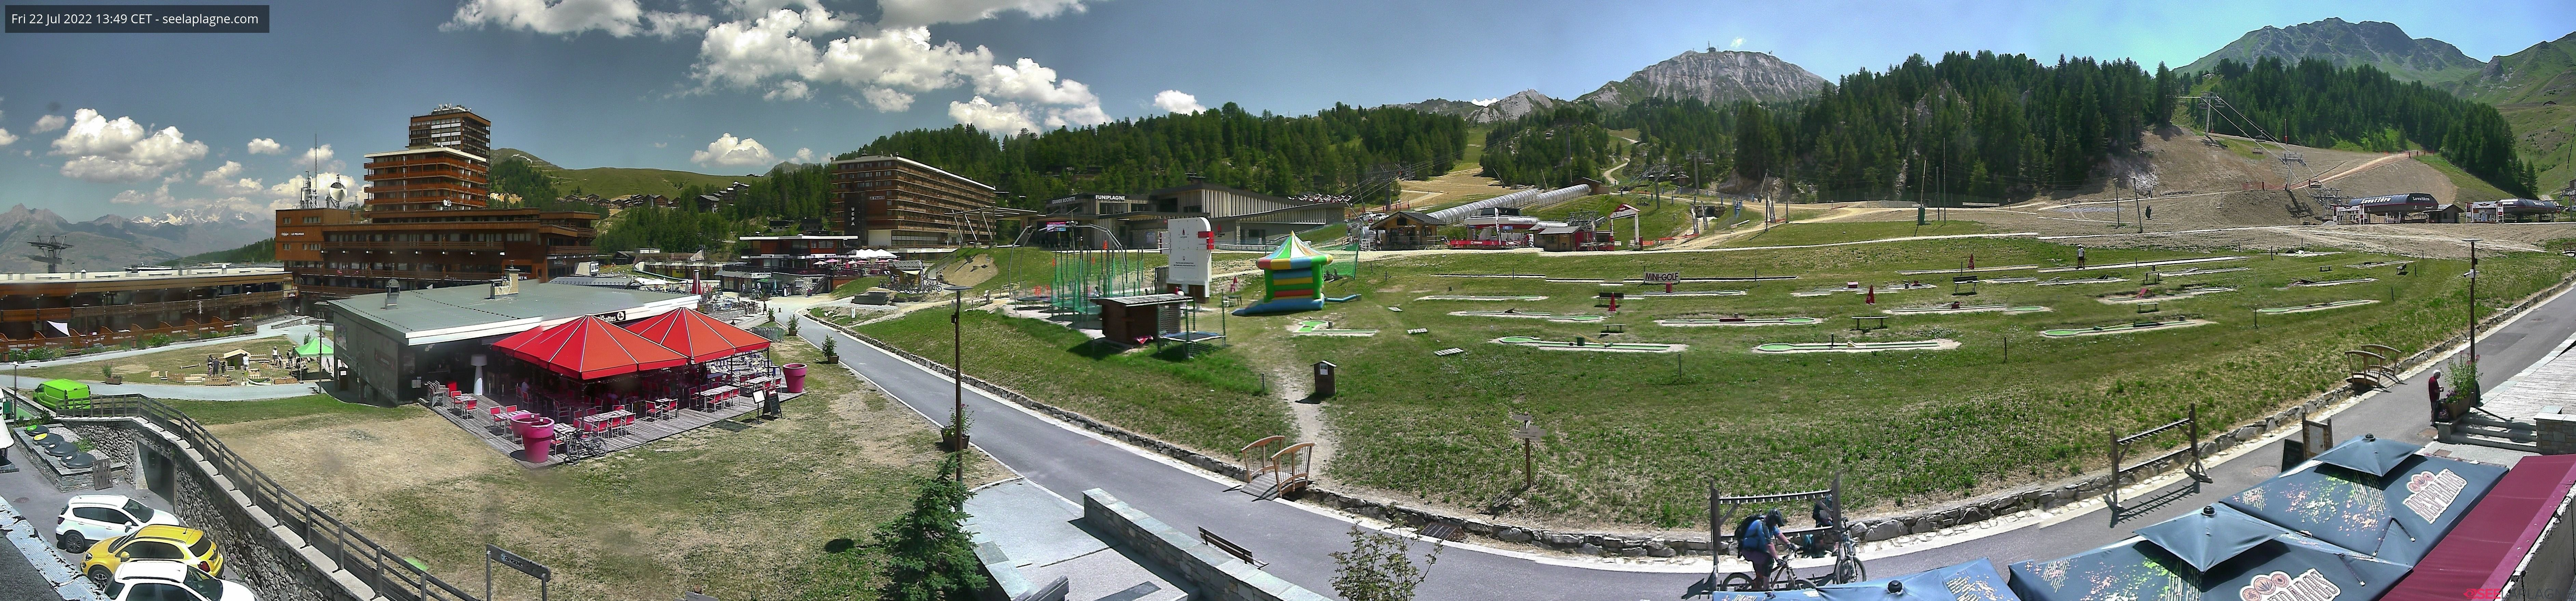 Webcams La Plagne